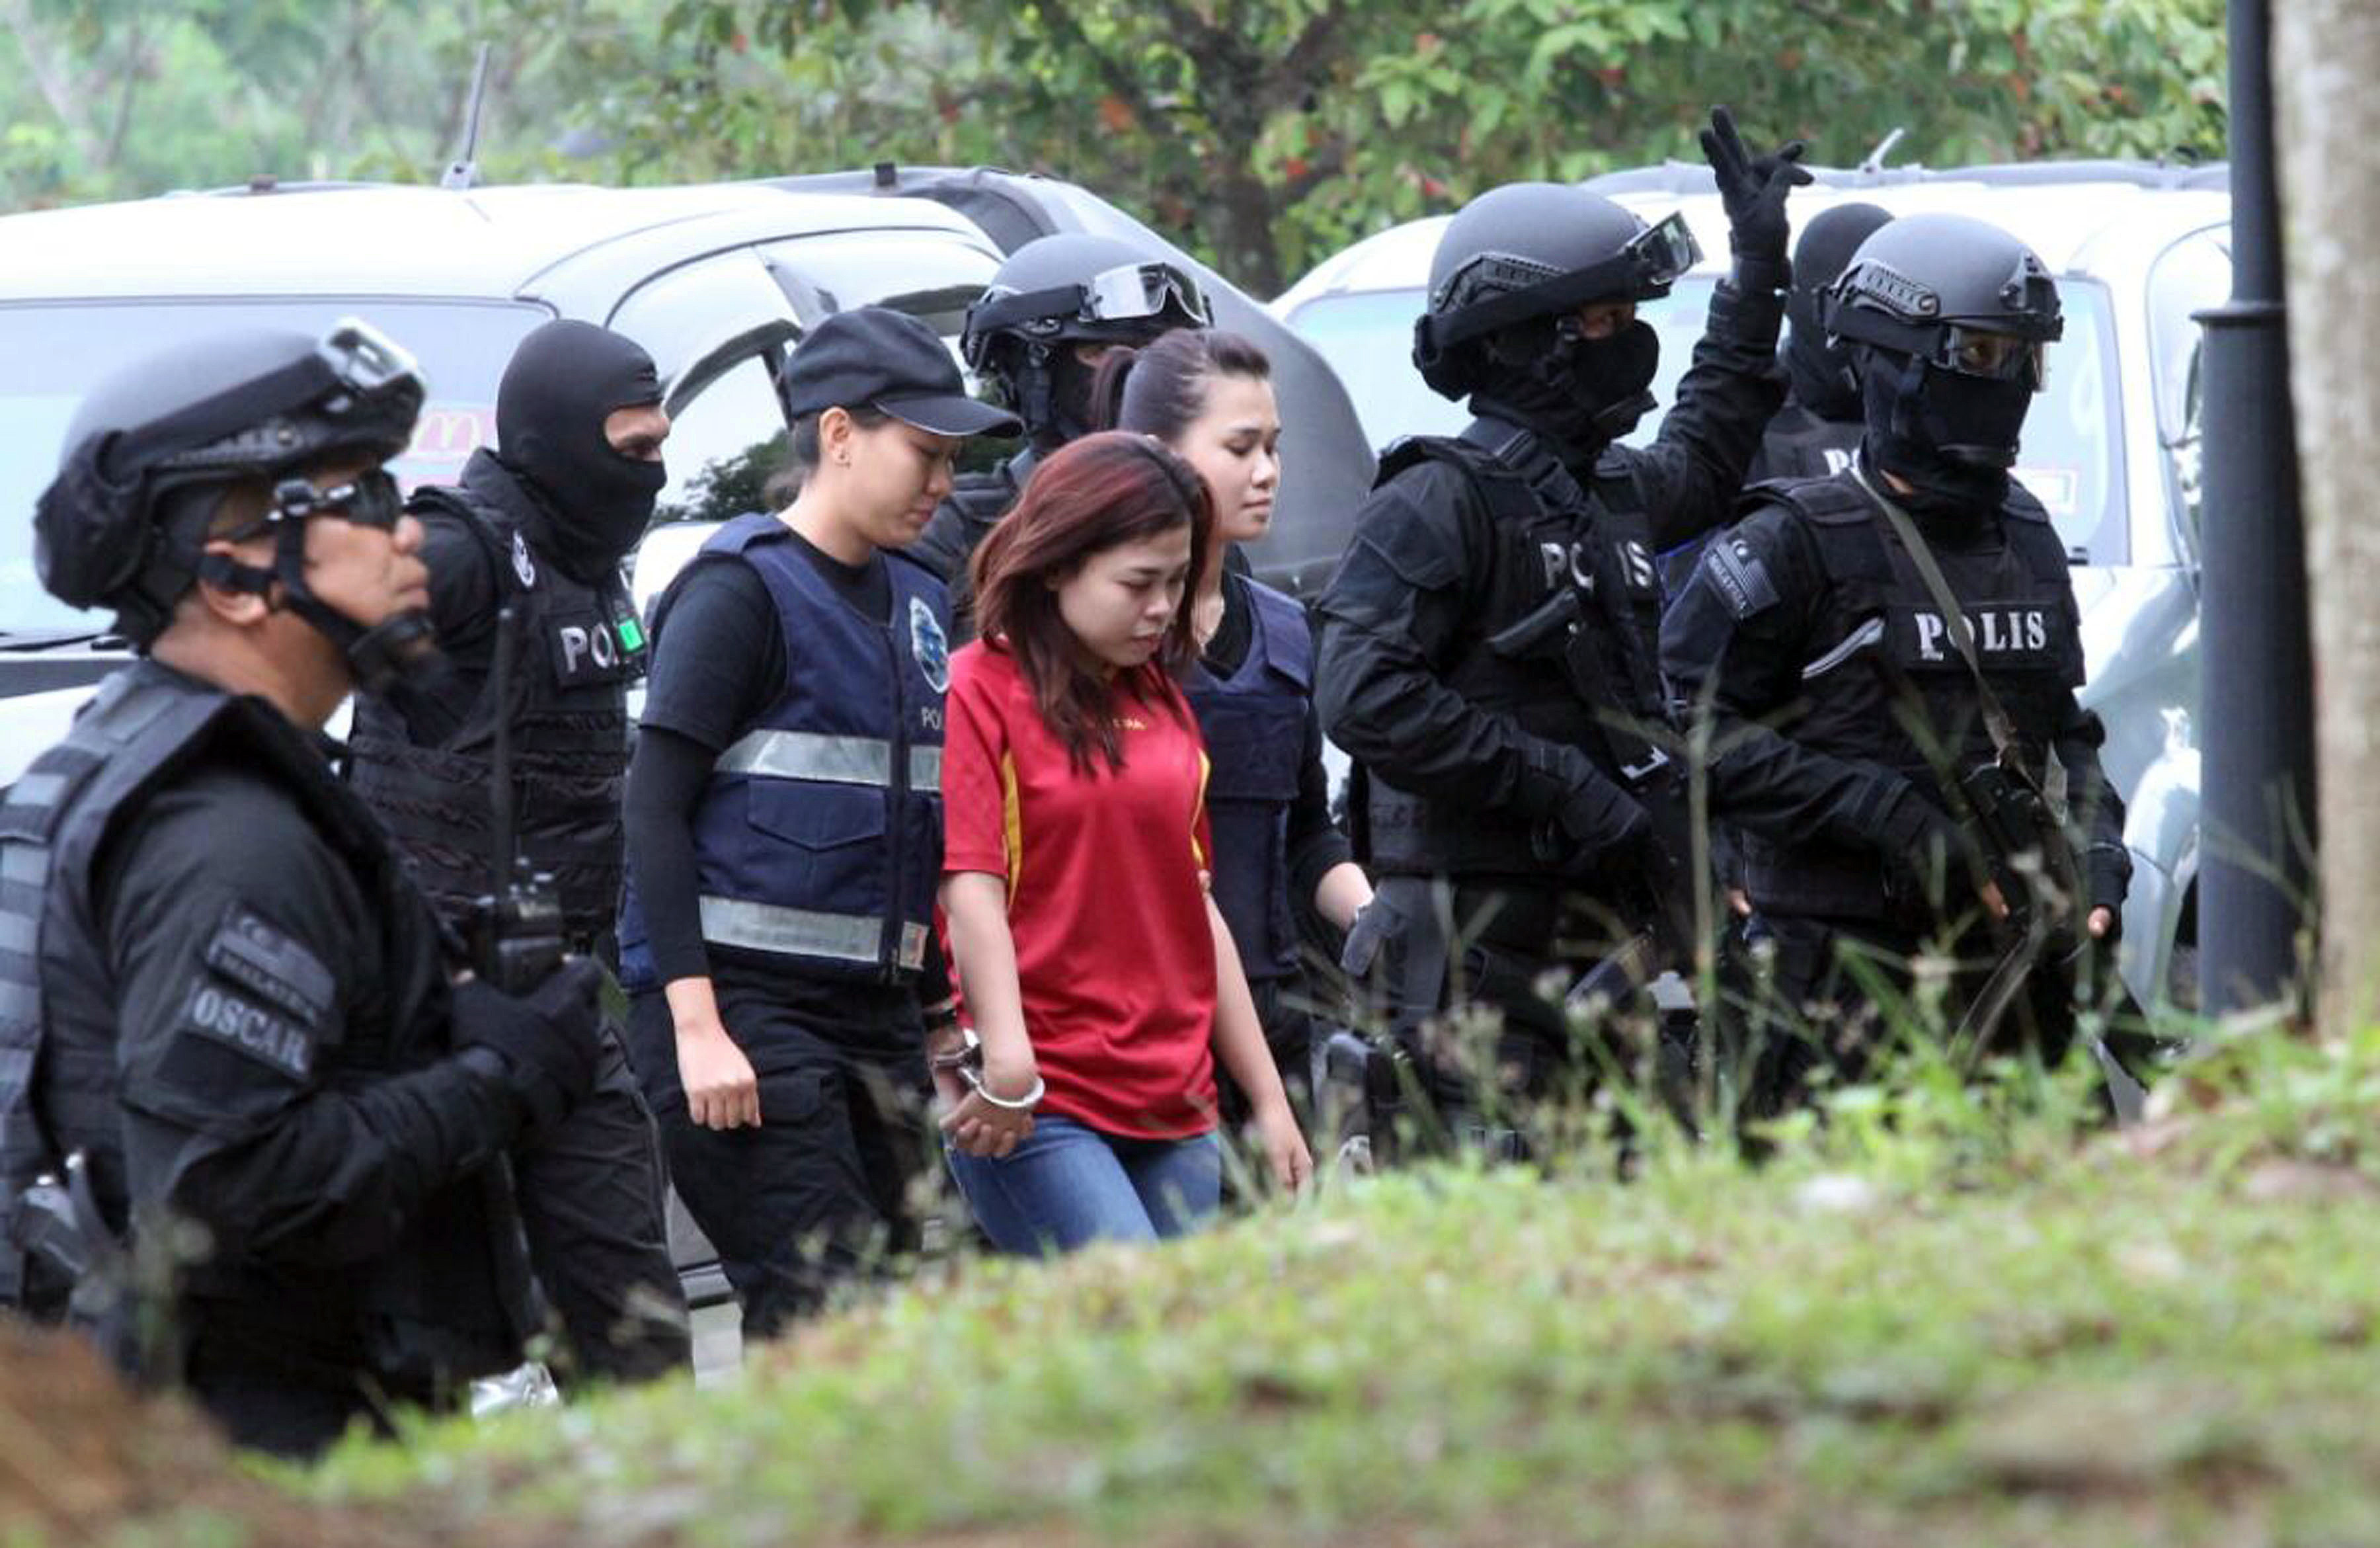 Indonesian suspect Siti Aisyah (C) in the ongoing assassination investigation, is escorted by police officers as she arrives at Sepang court in Sepang, Malaysia on March 1, 2017. (AP Photo)